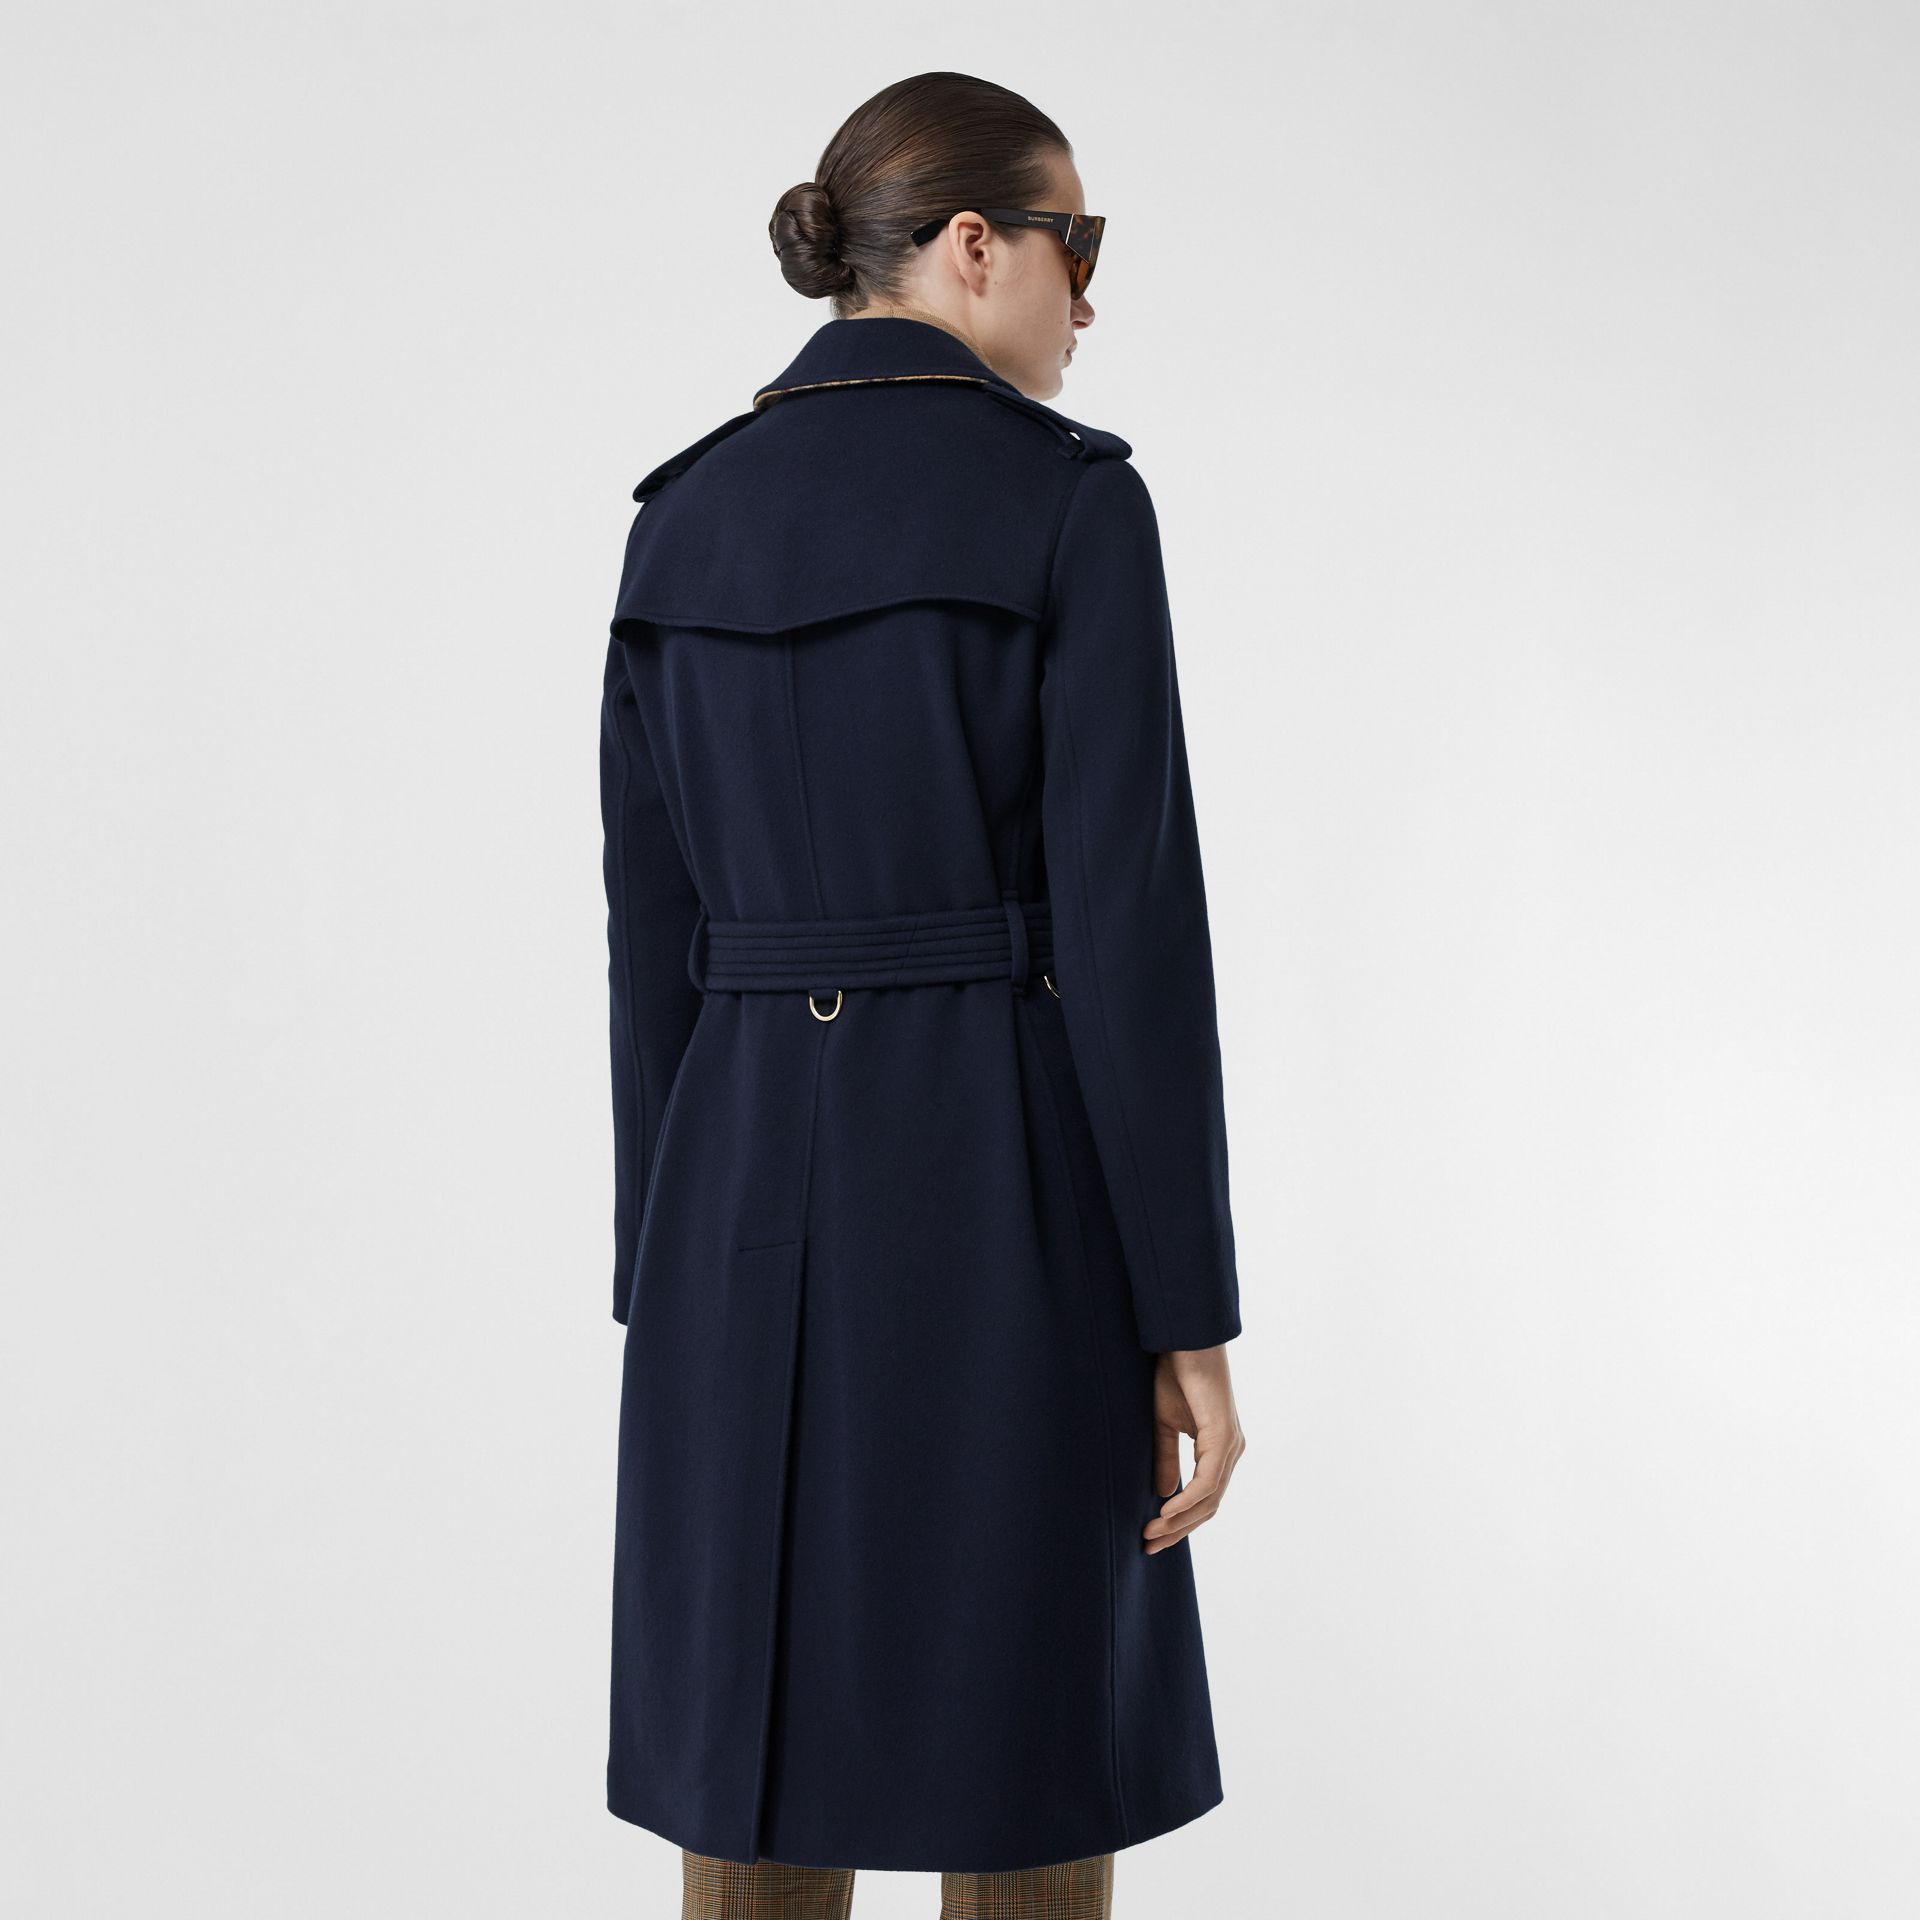 Cashmere Trench Coat in Navy - Women | Burberry - gallery image 2